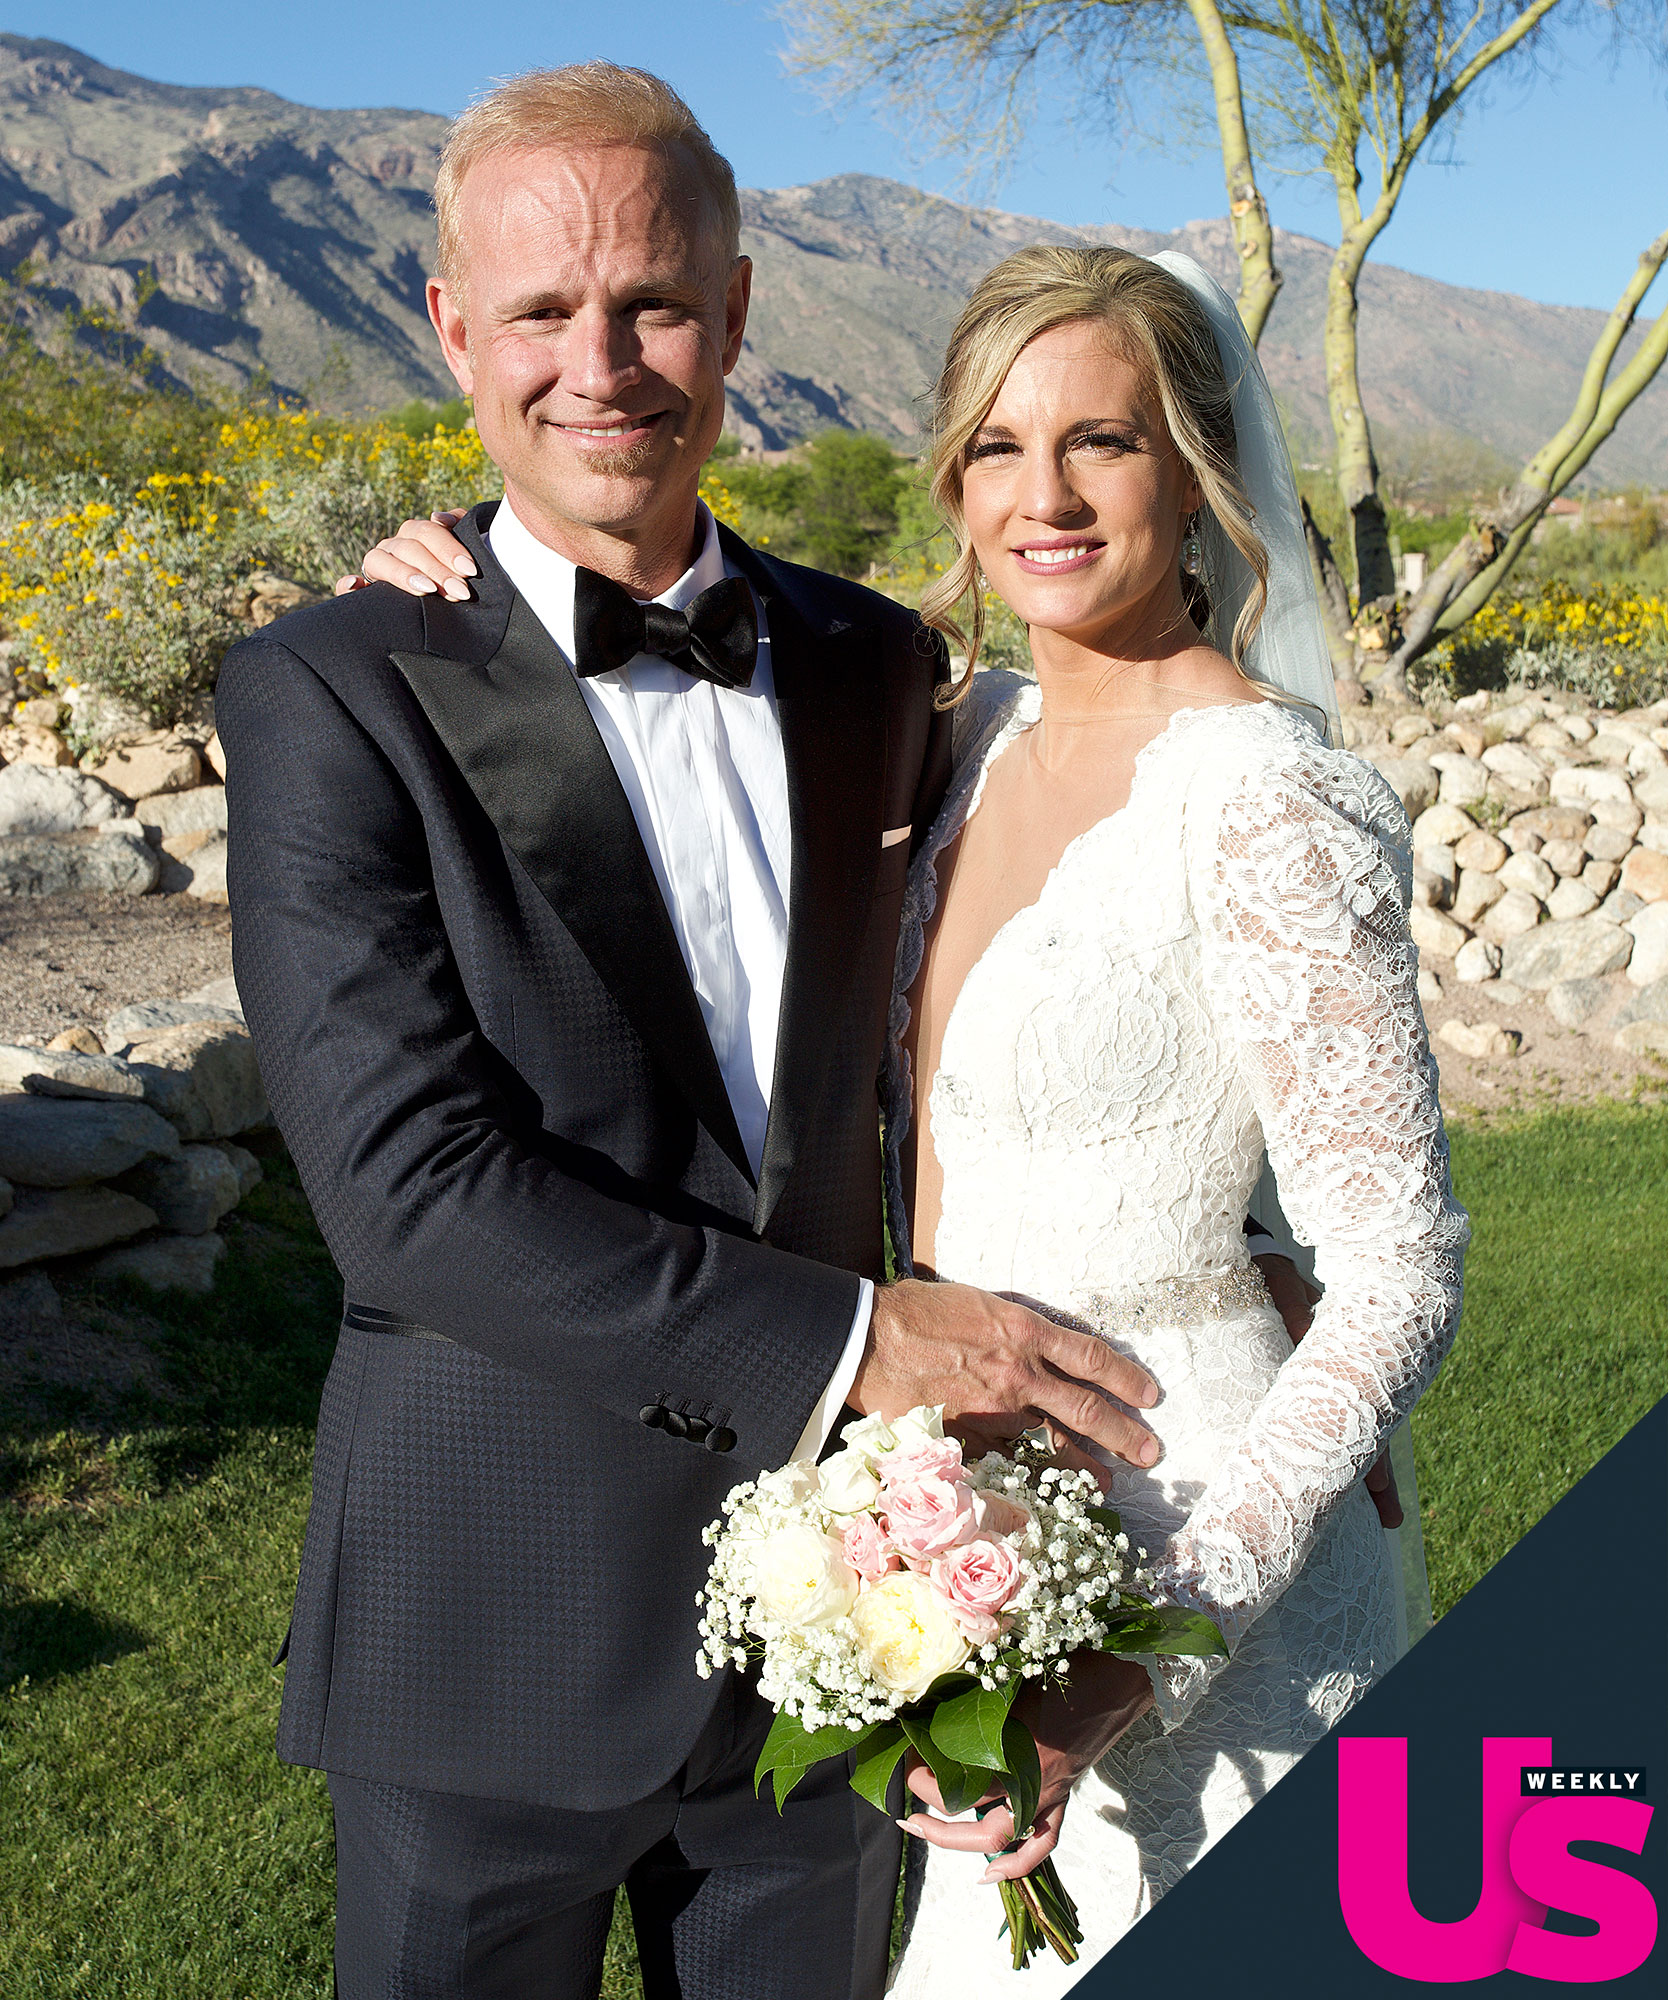 093d2db22b0d2 The Price Is Right' Announcer George Gray Marries Brittney Green: Pic